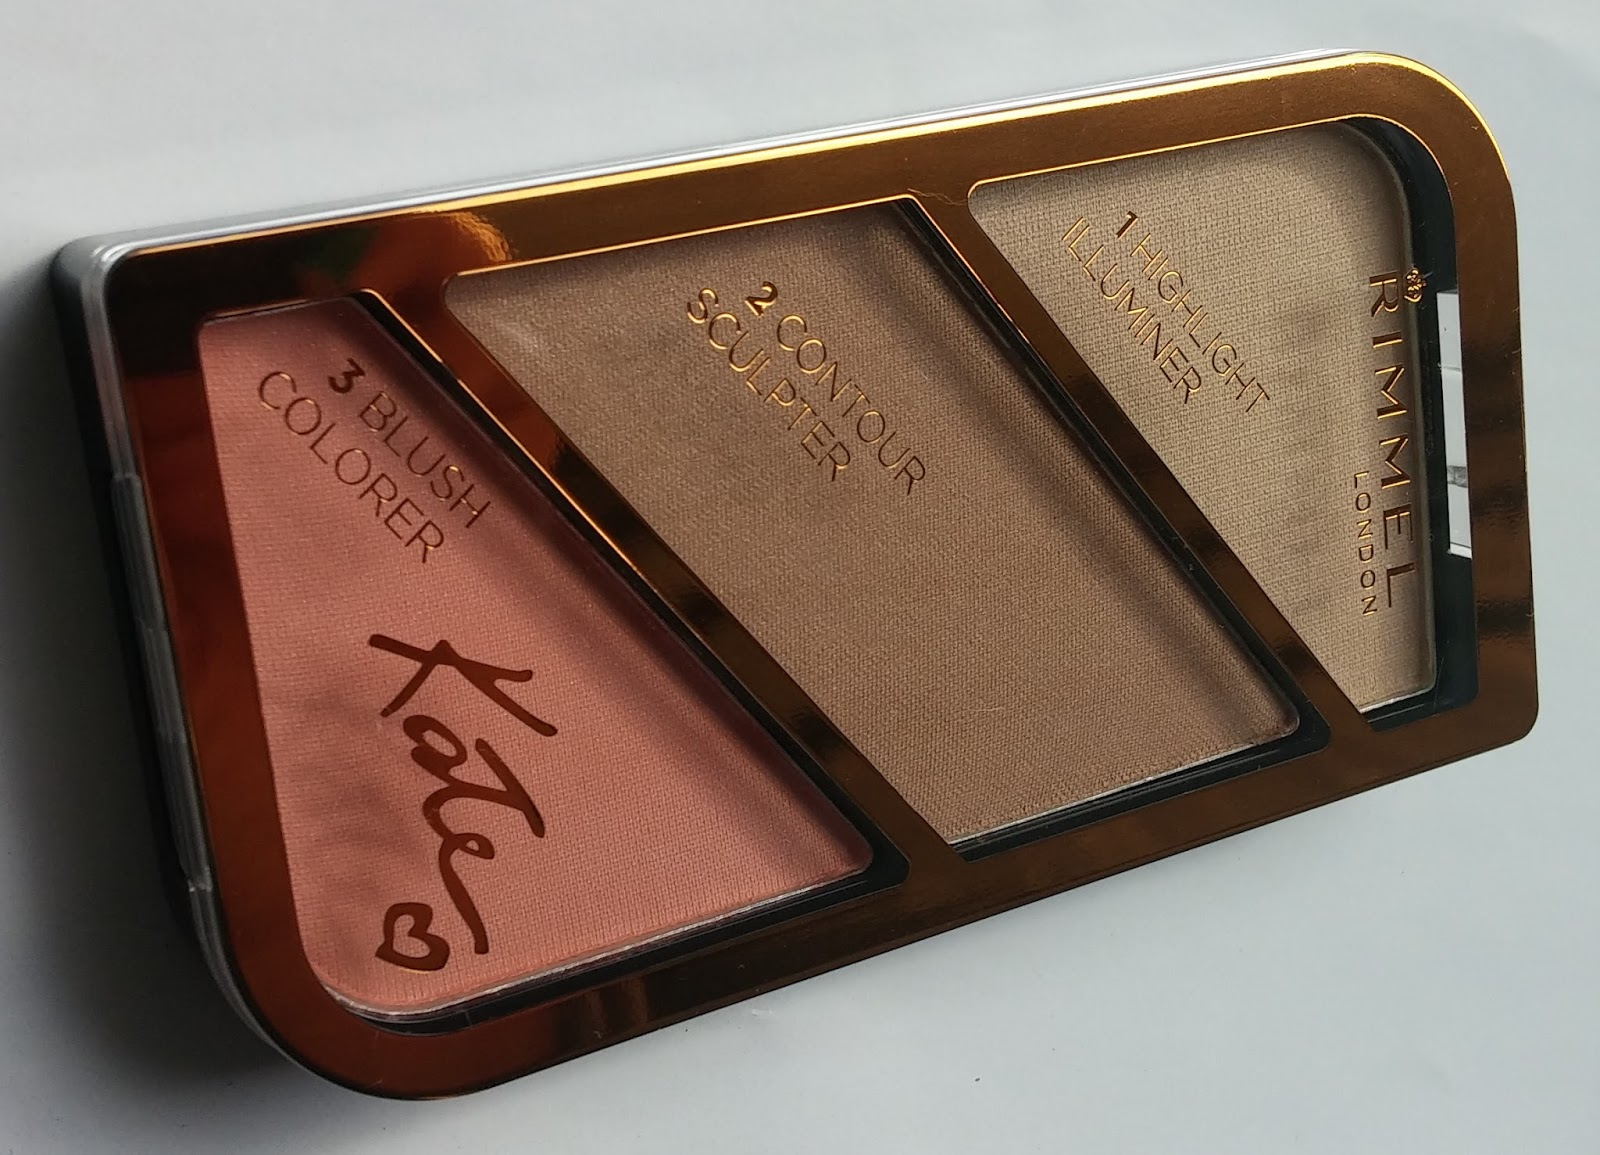 Rimmel Kate Sculpting Highlighting Kaleng 30 Liter Now That I Showed You W7 The Cheeky Trio Palette Will Show Kit In Coral Glow Designed By Moss Was Sent